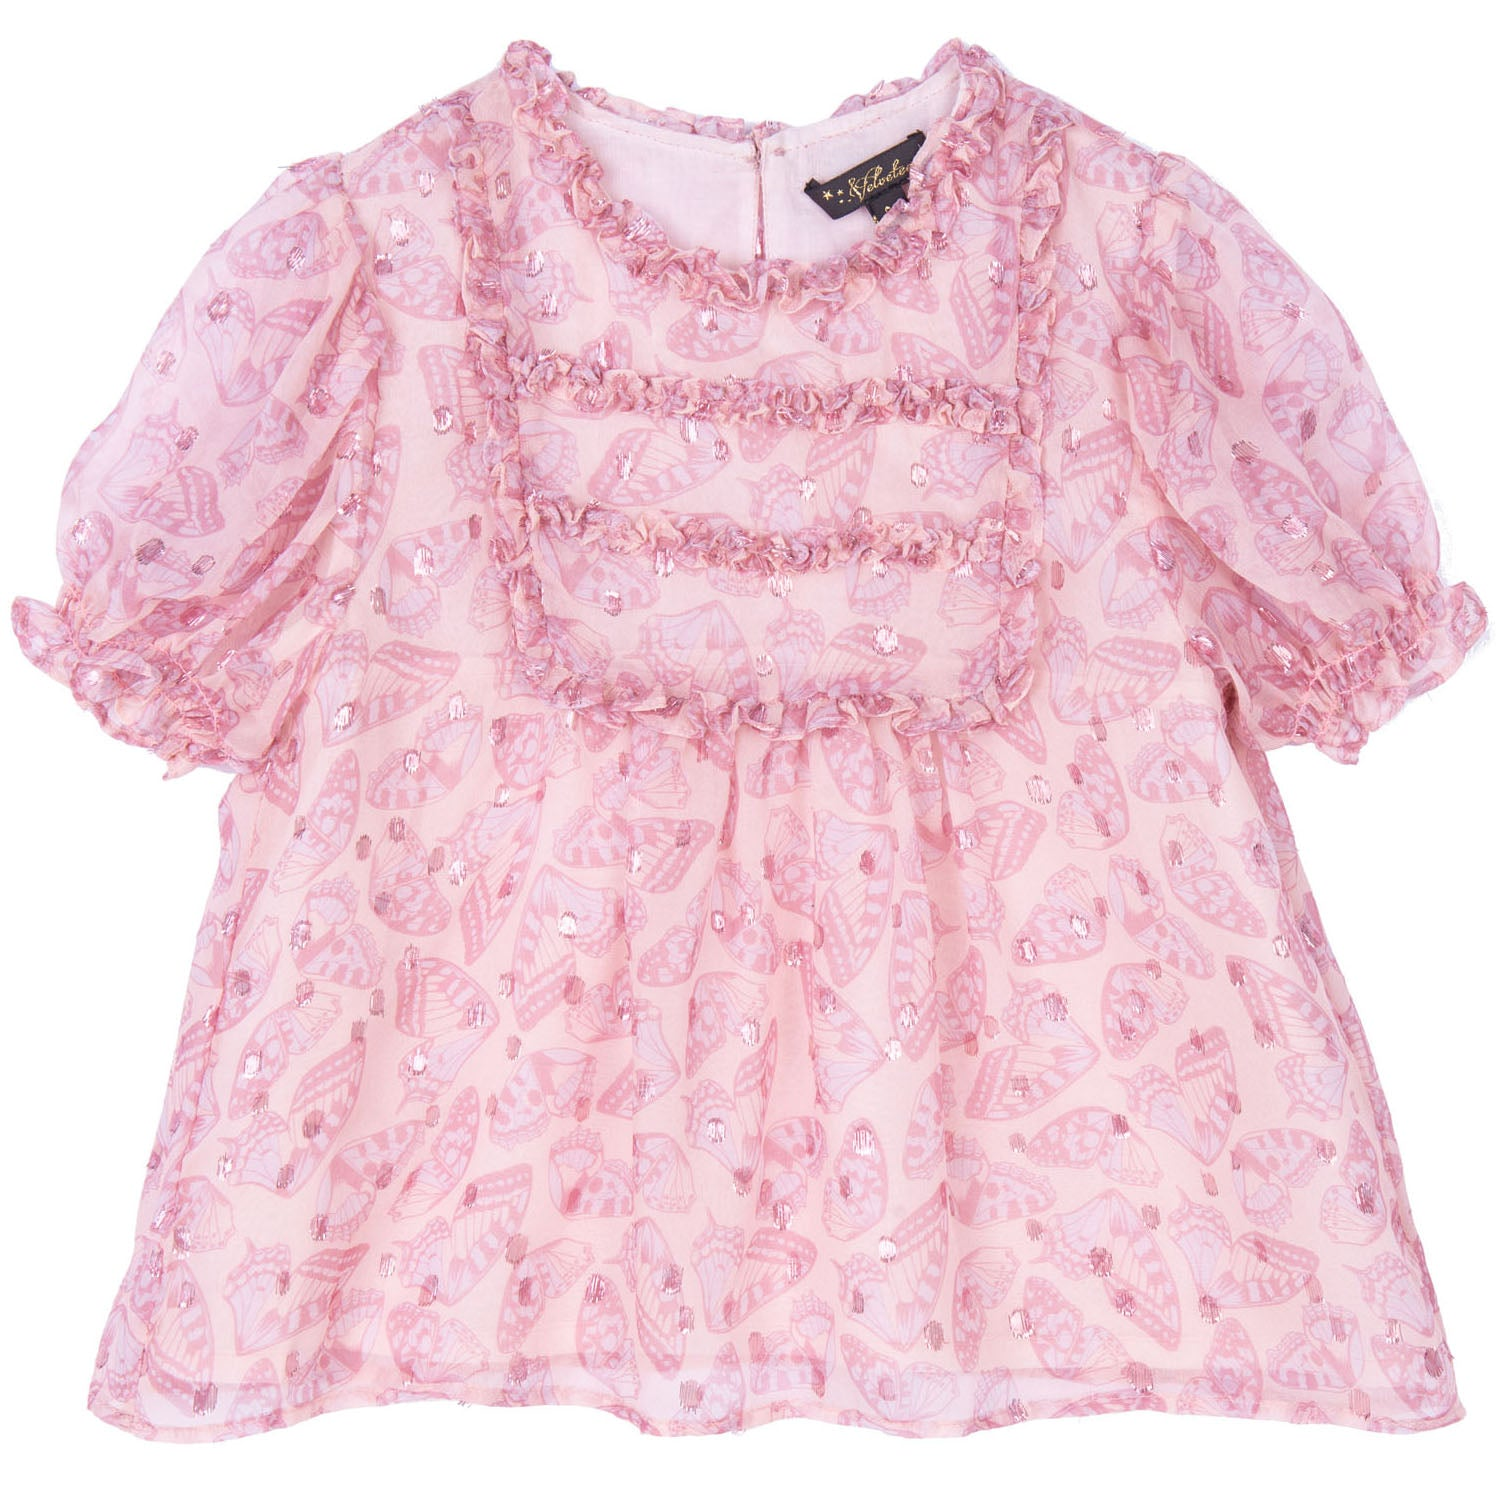 velveteen gracie puff sleeve lace frill top